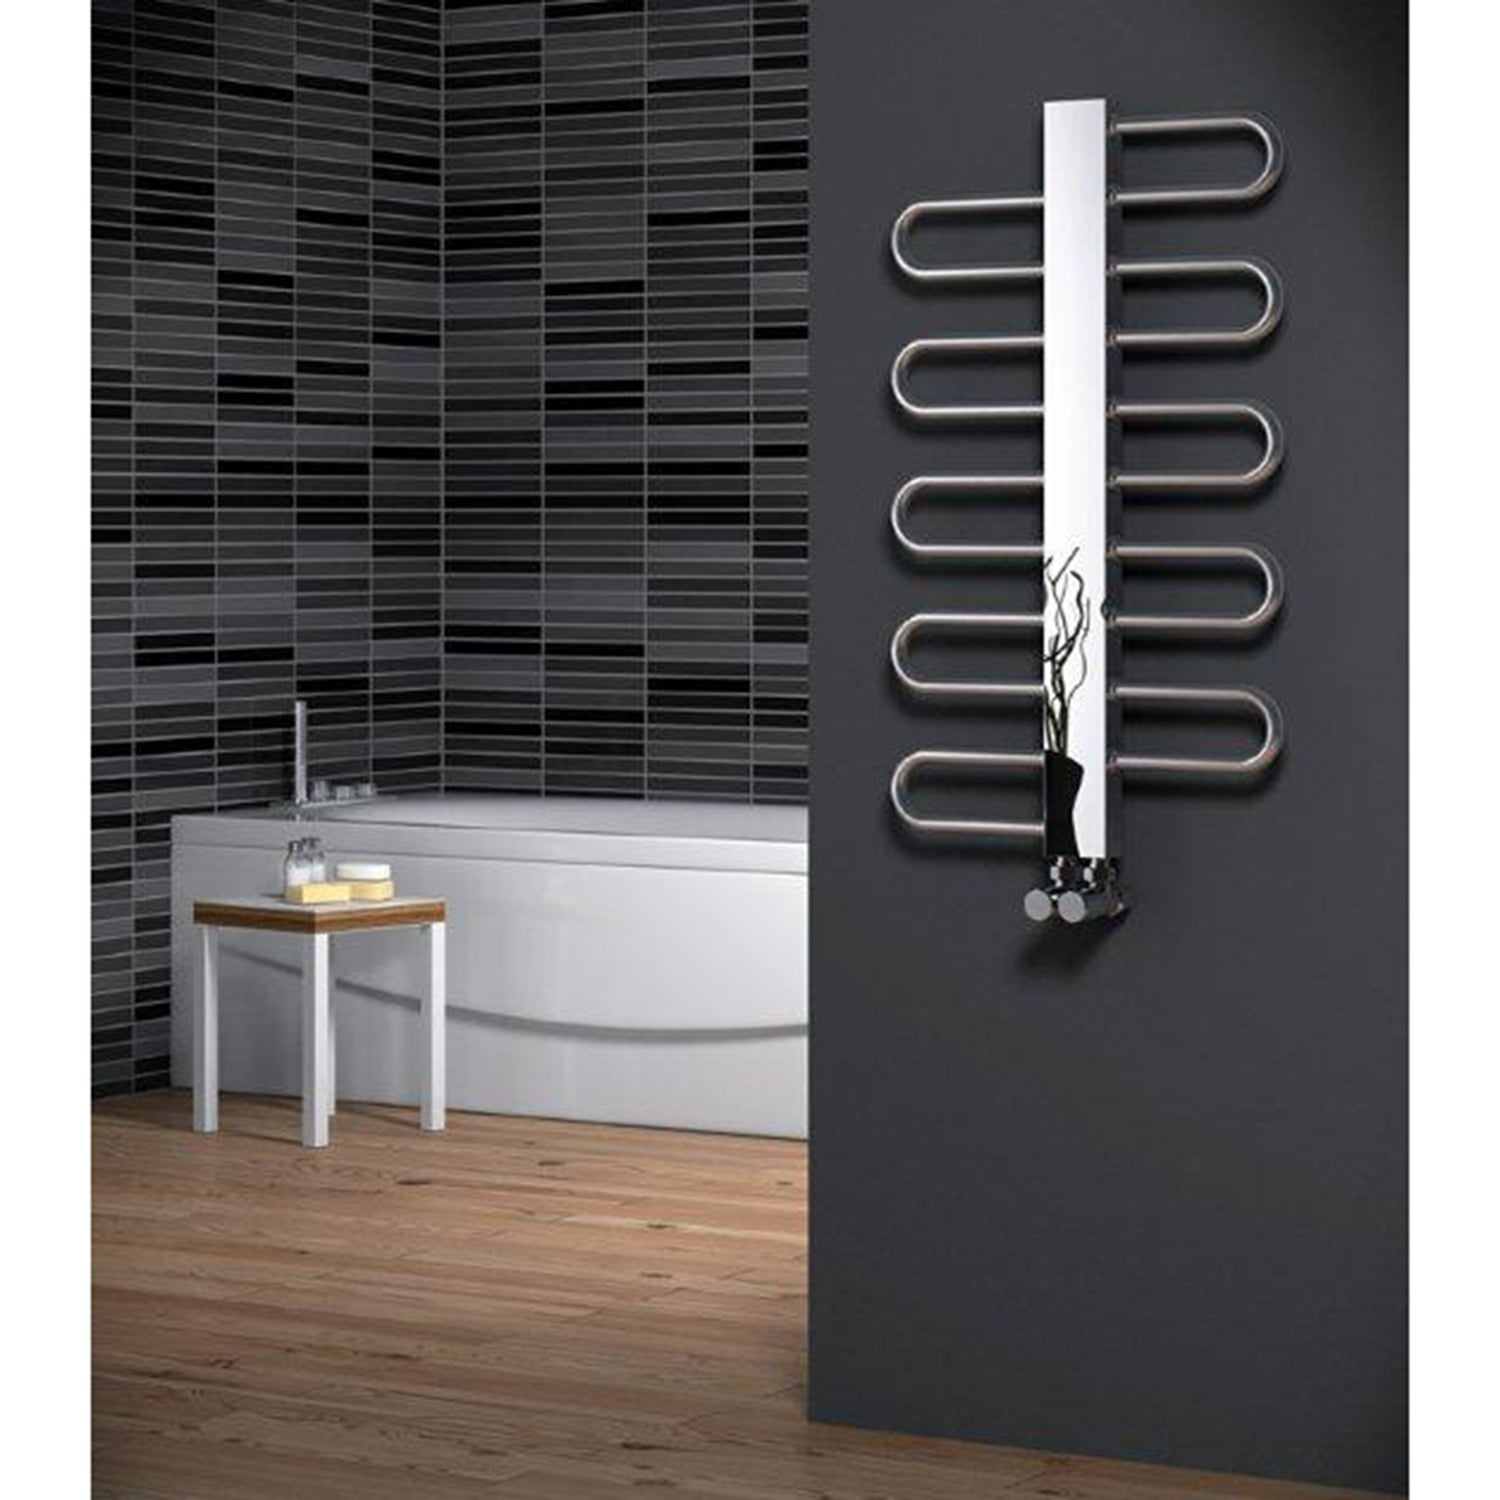 Reina Dynamic Designer Chrome Towel Rail Warmer